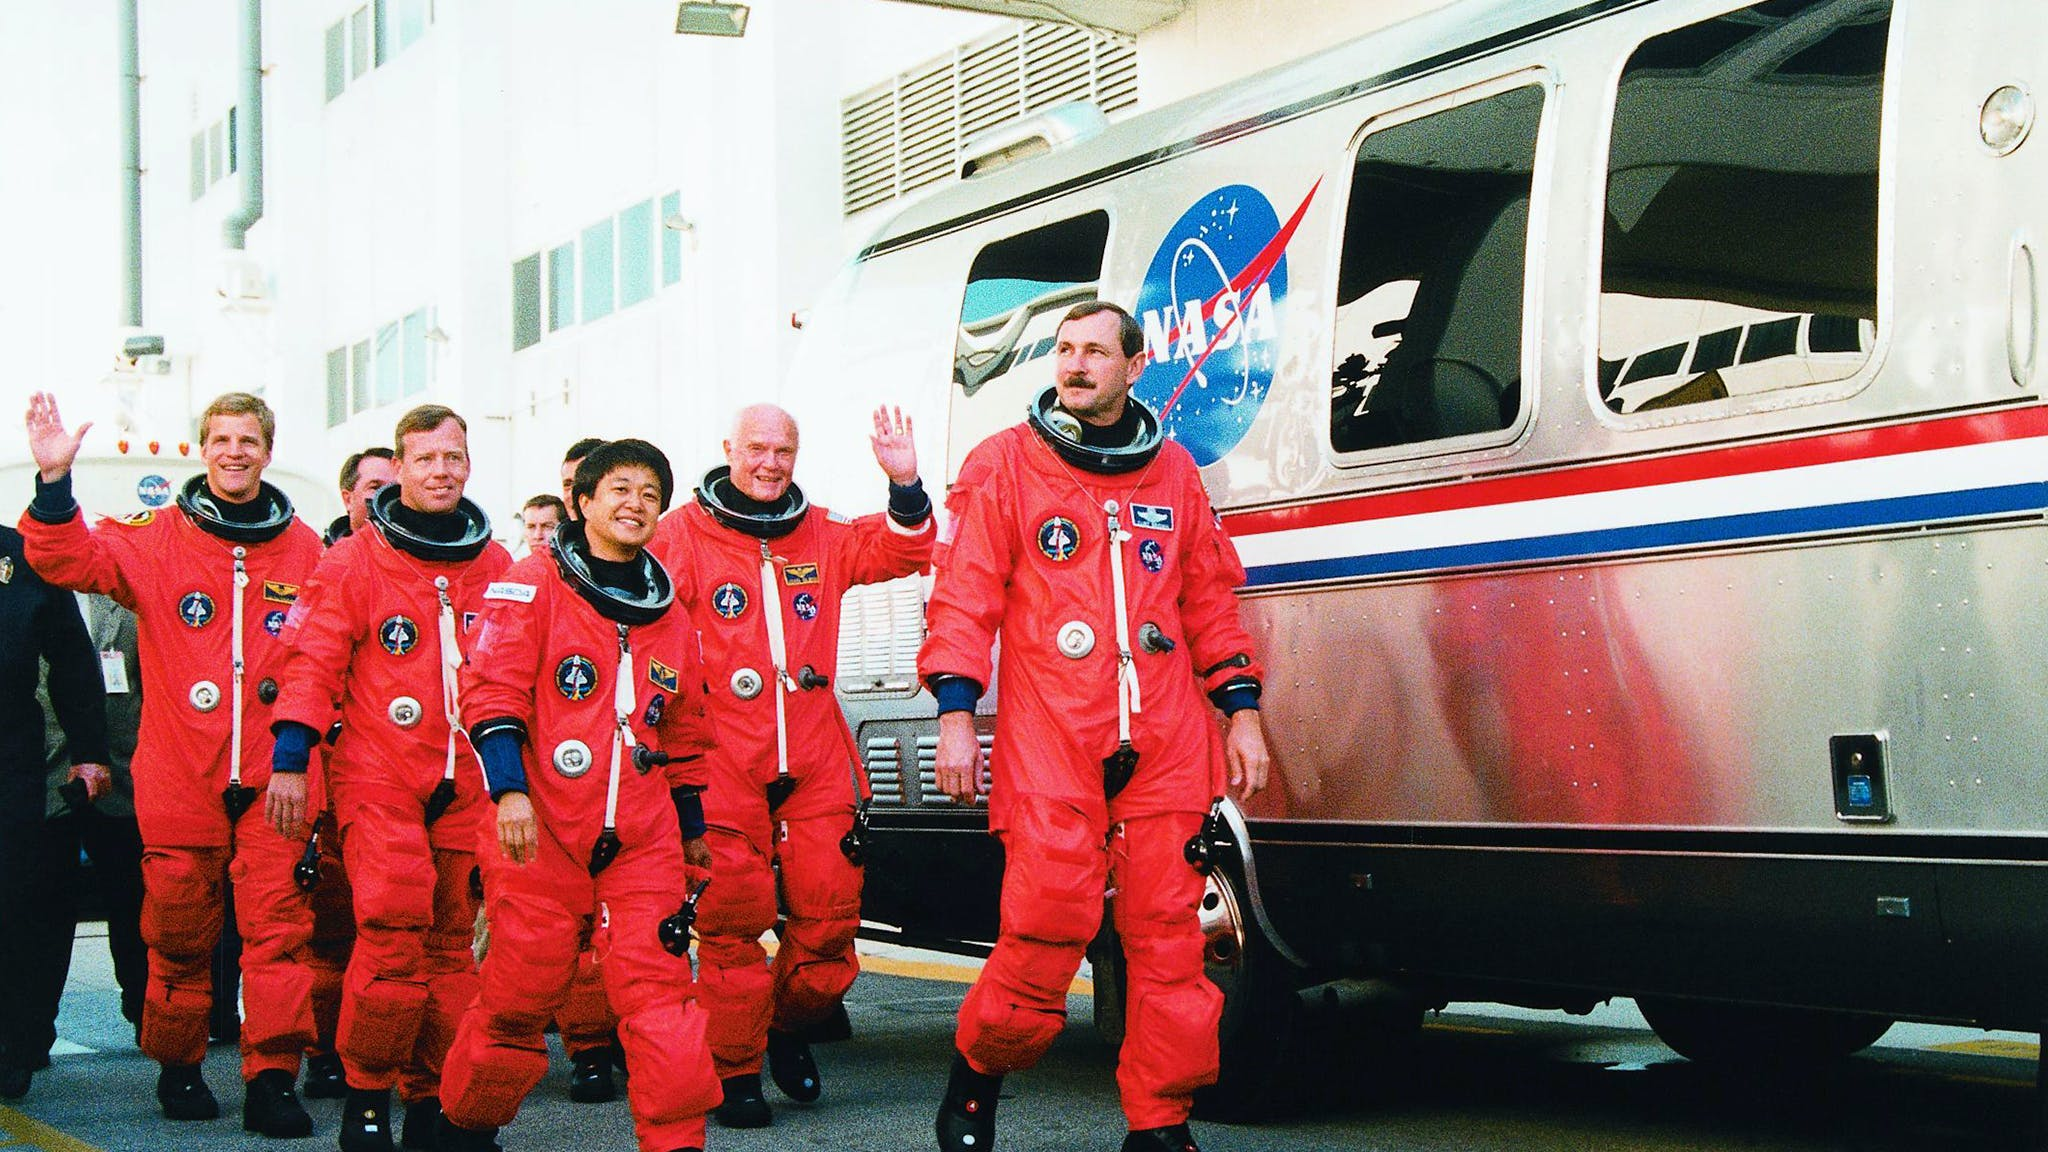 Airstream-Astrovan-and-NASA-astronauts